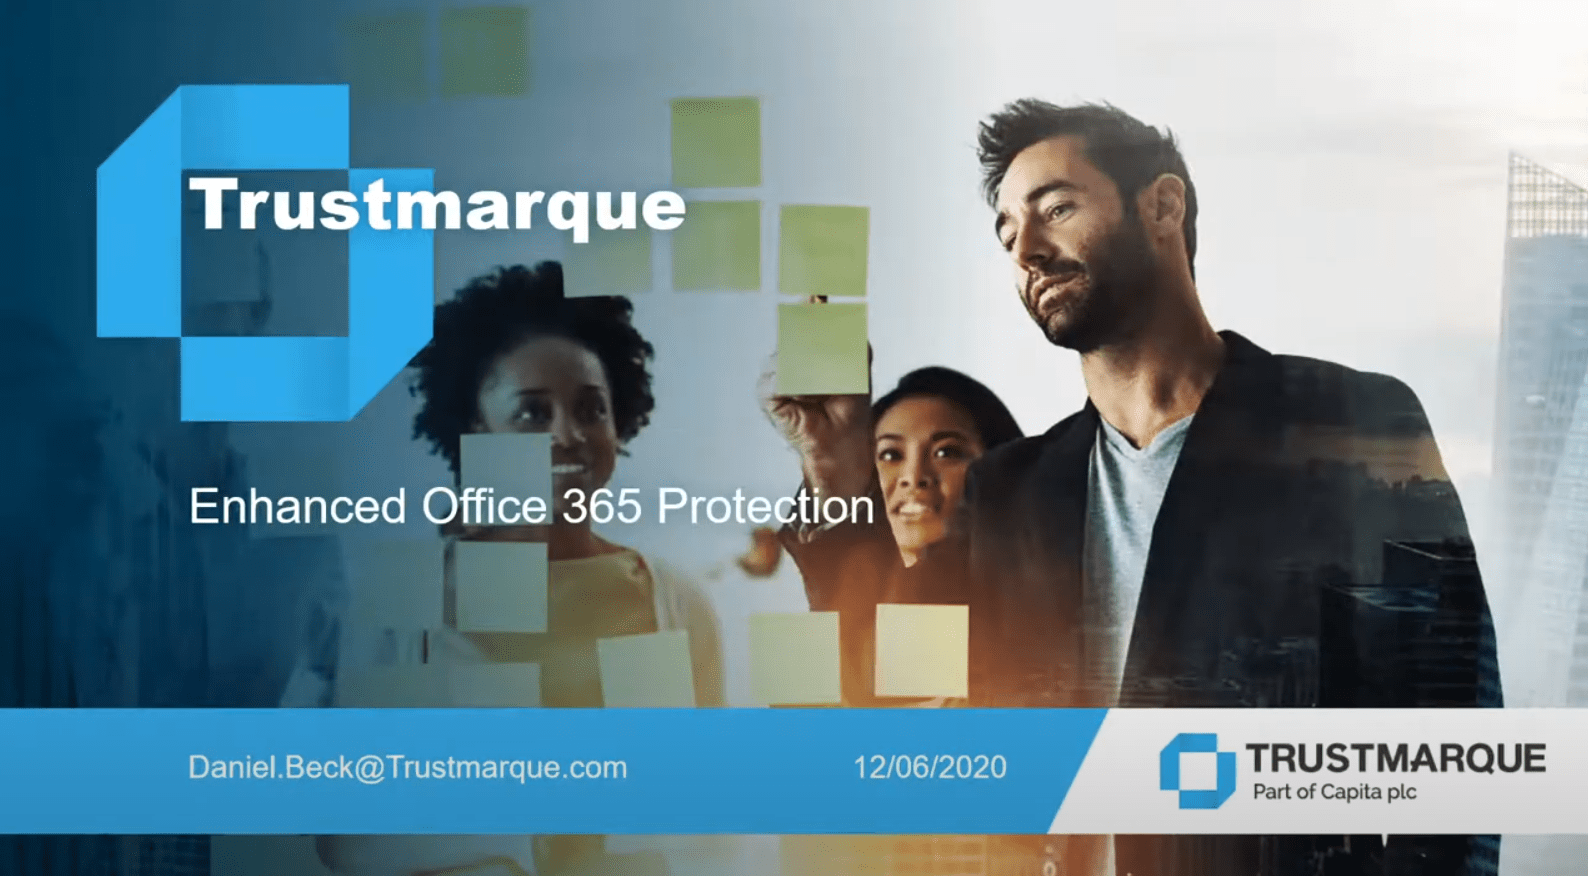 Enhanced Office 365 Protection